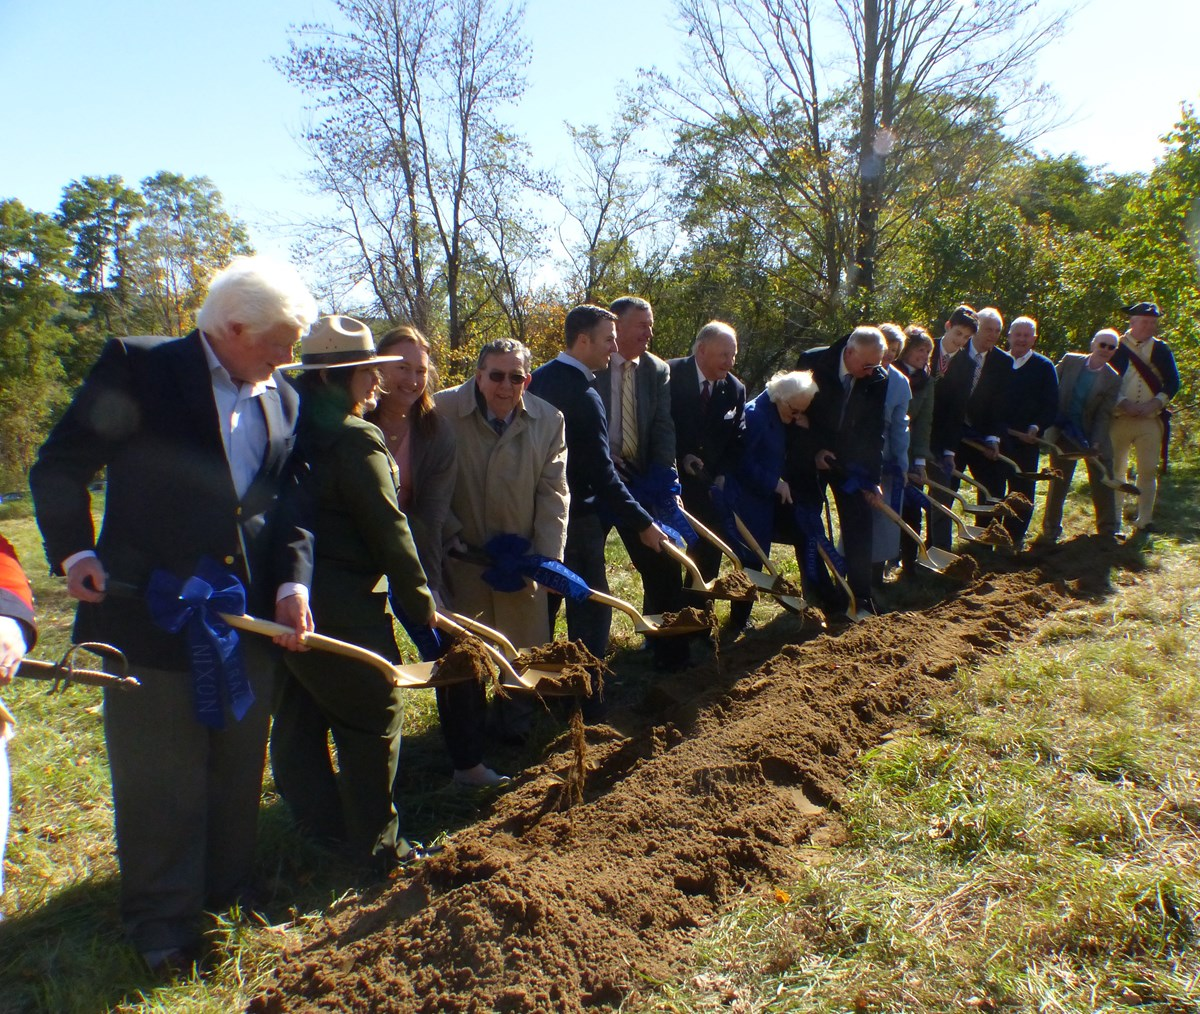 Fifteen people plant shovels in the dirt to break ground for a new monument.